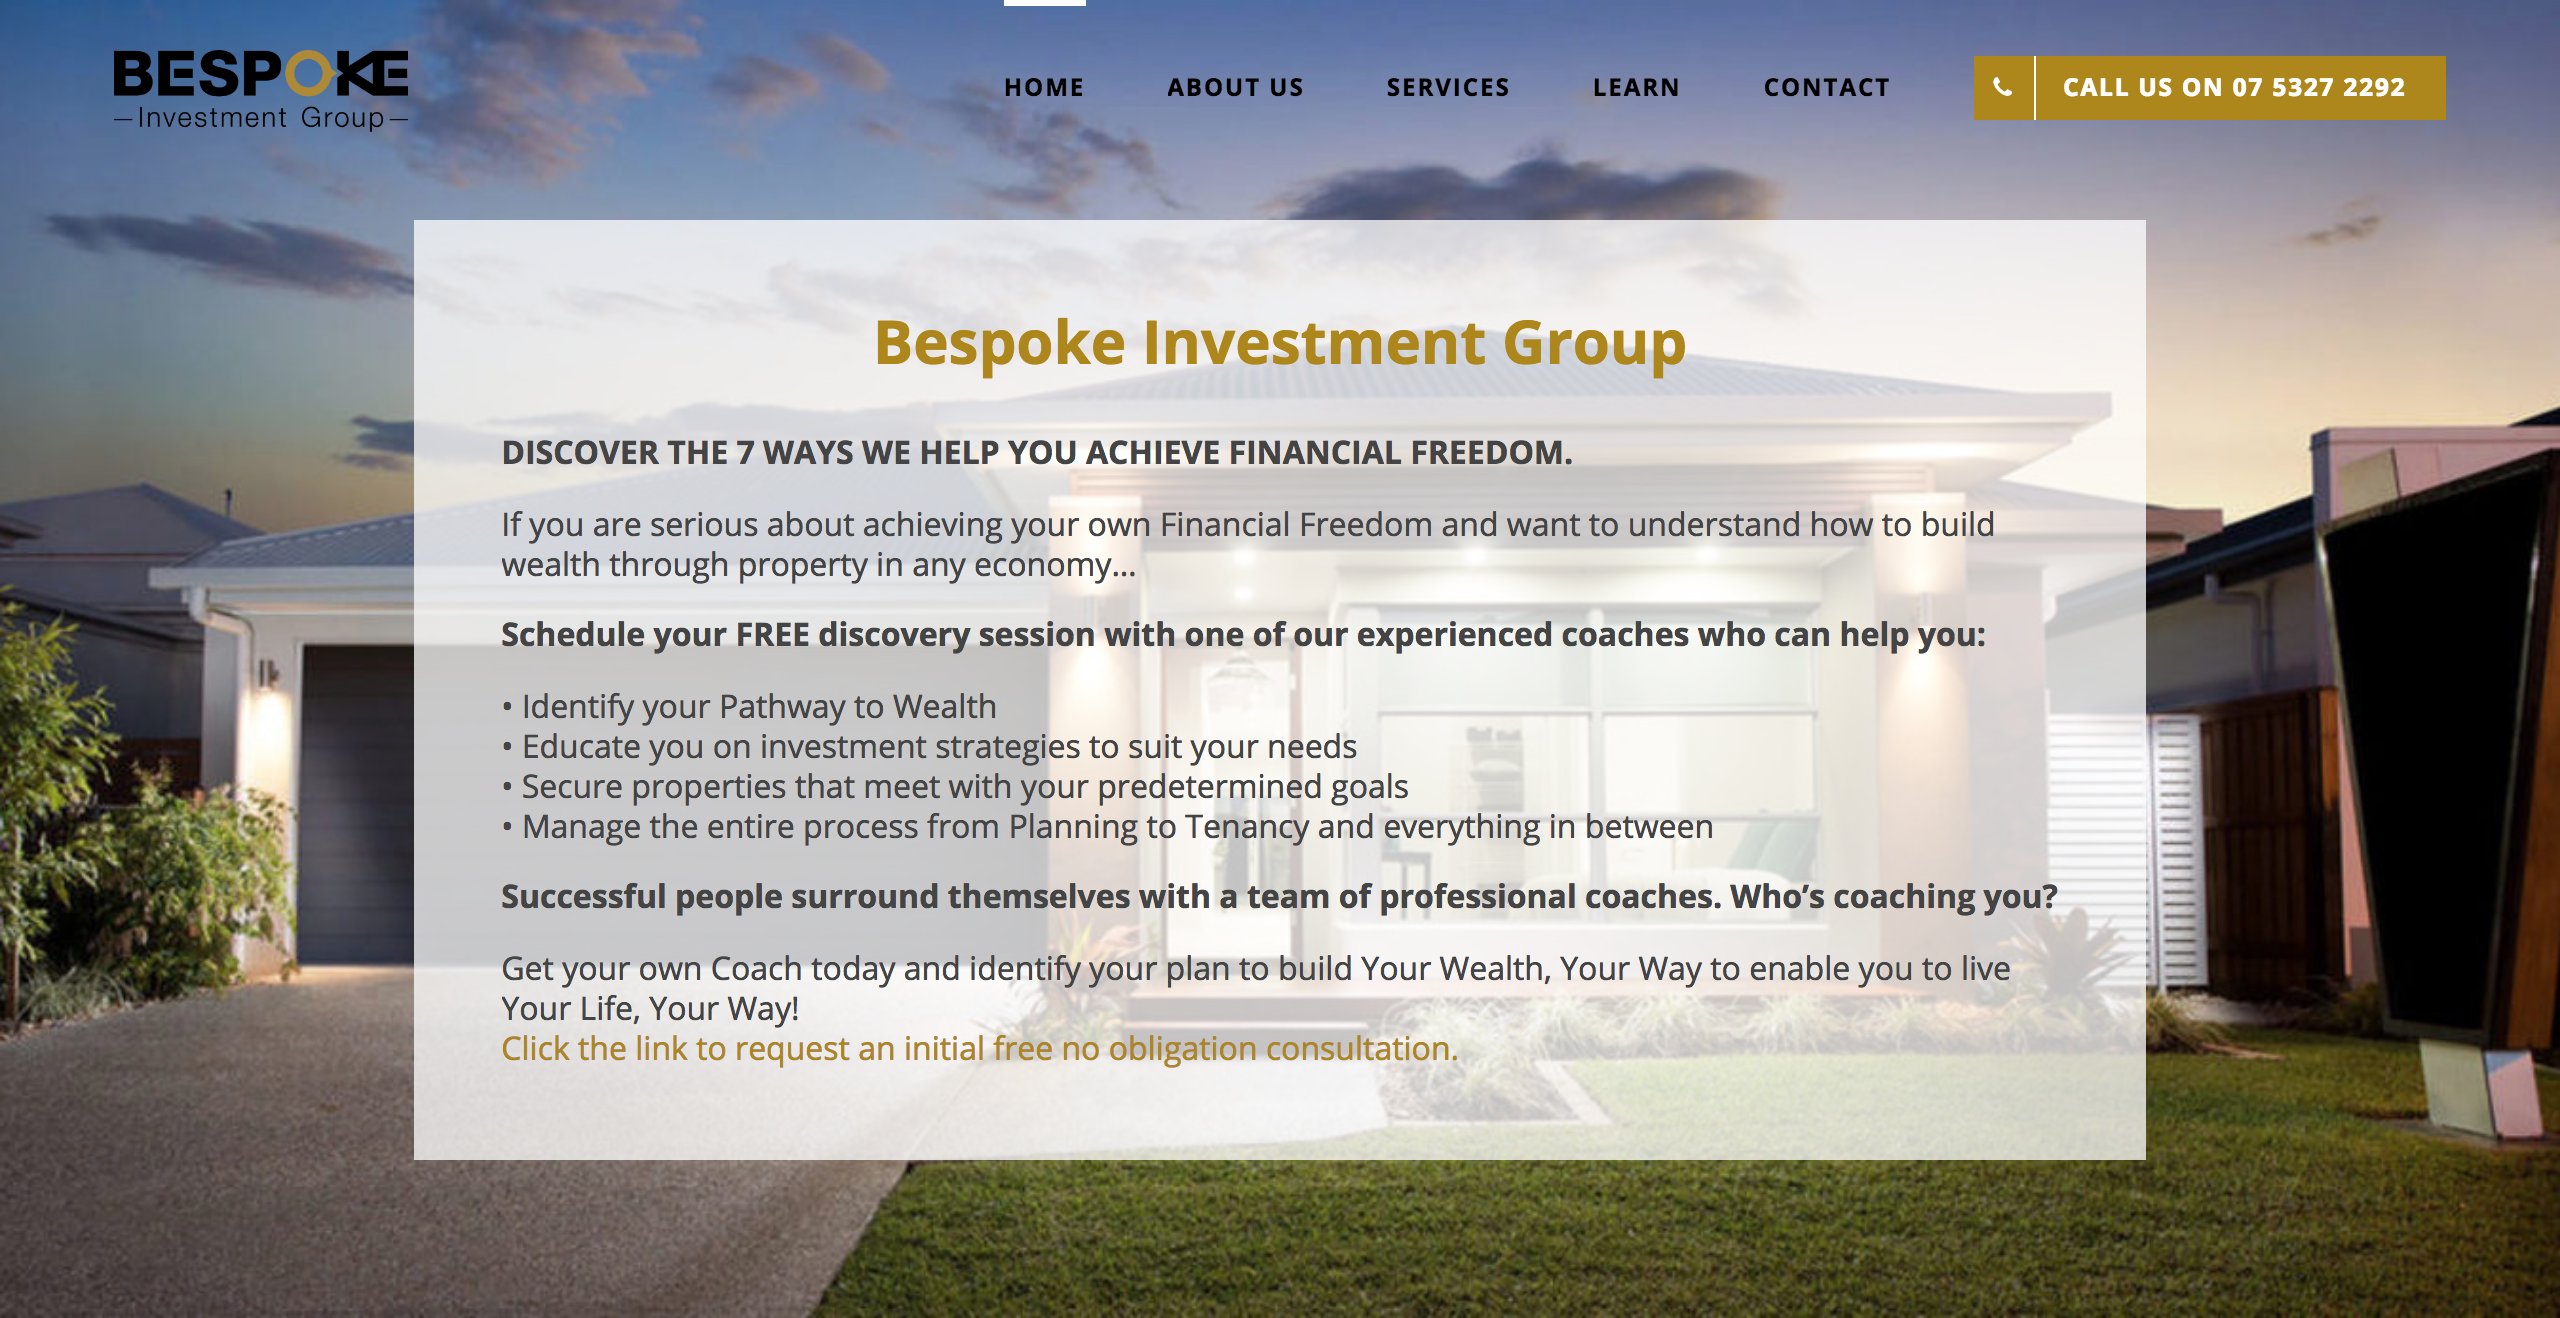 Bespoke Investment Group